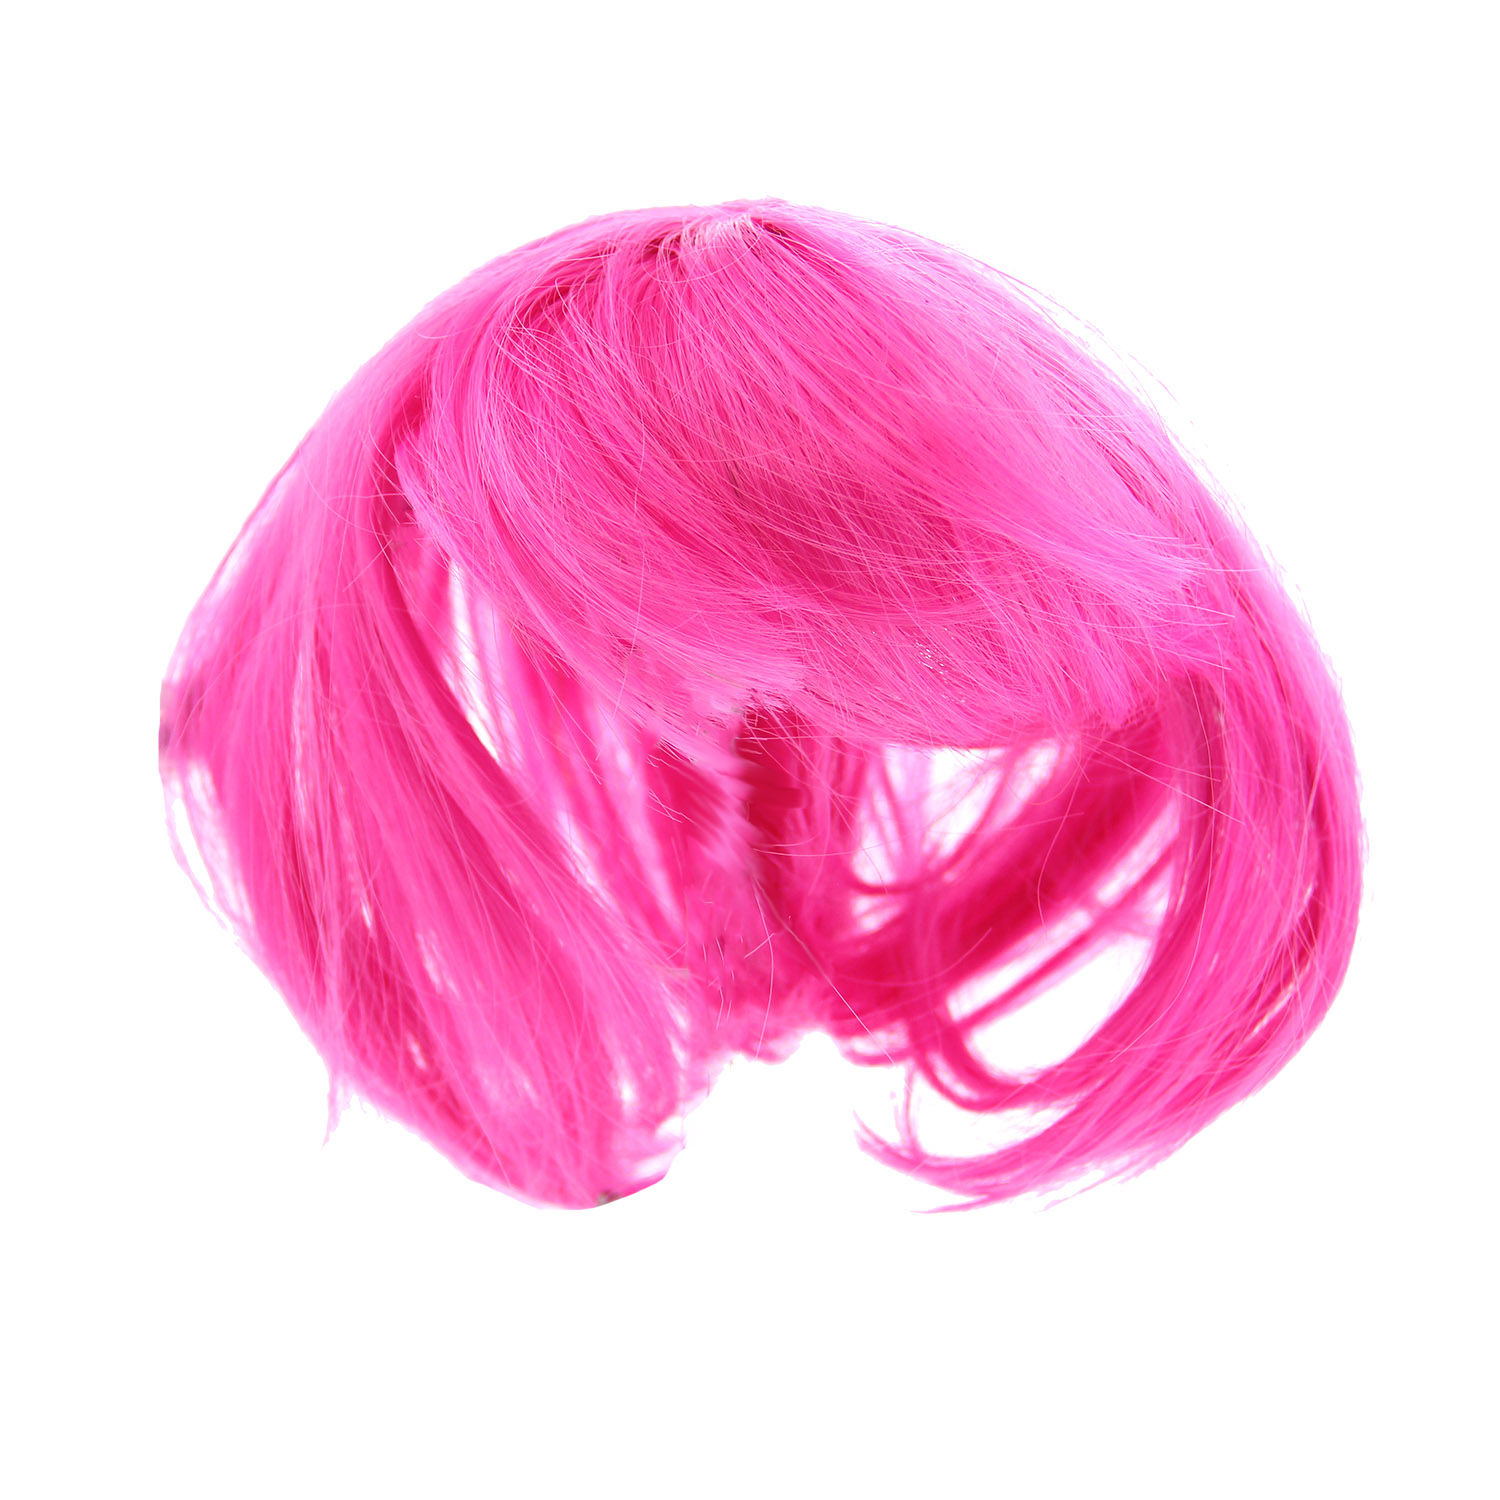 Short Bob Wig Dog Costume - Hot Pink